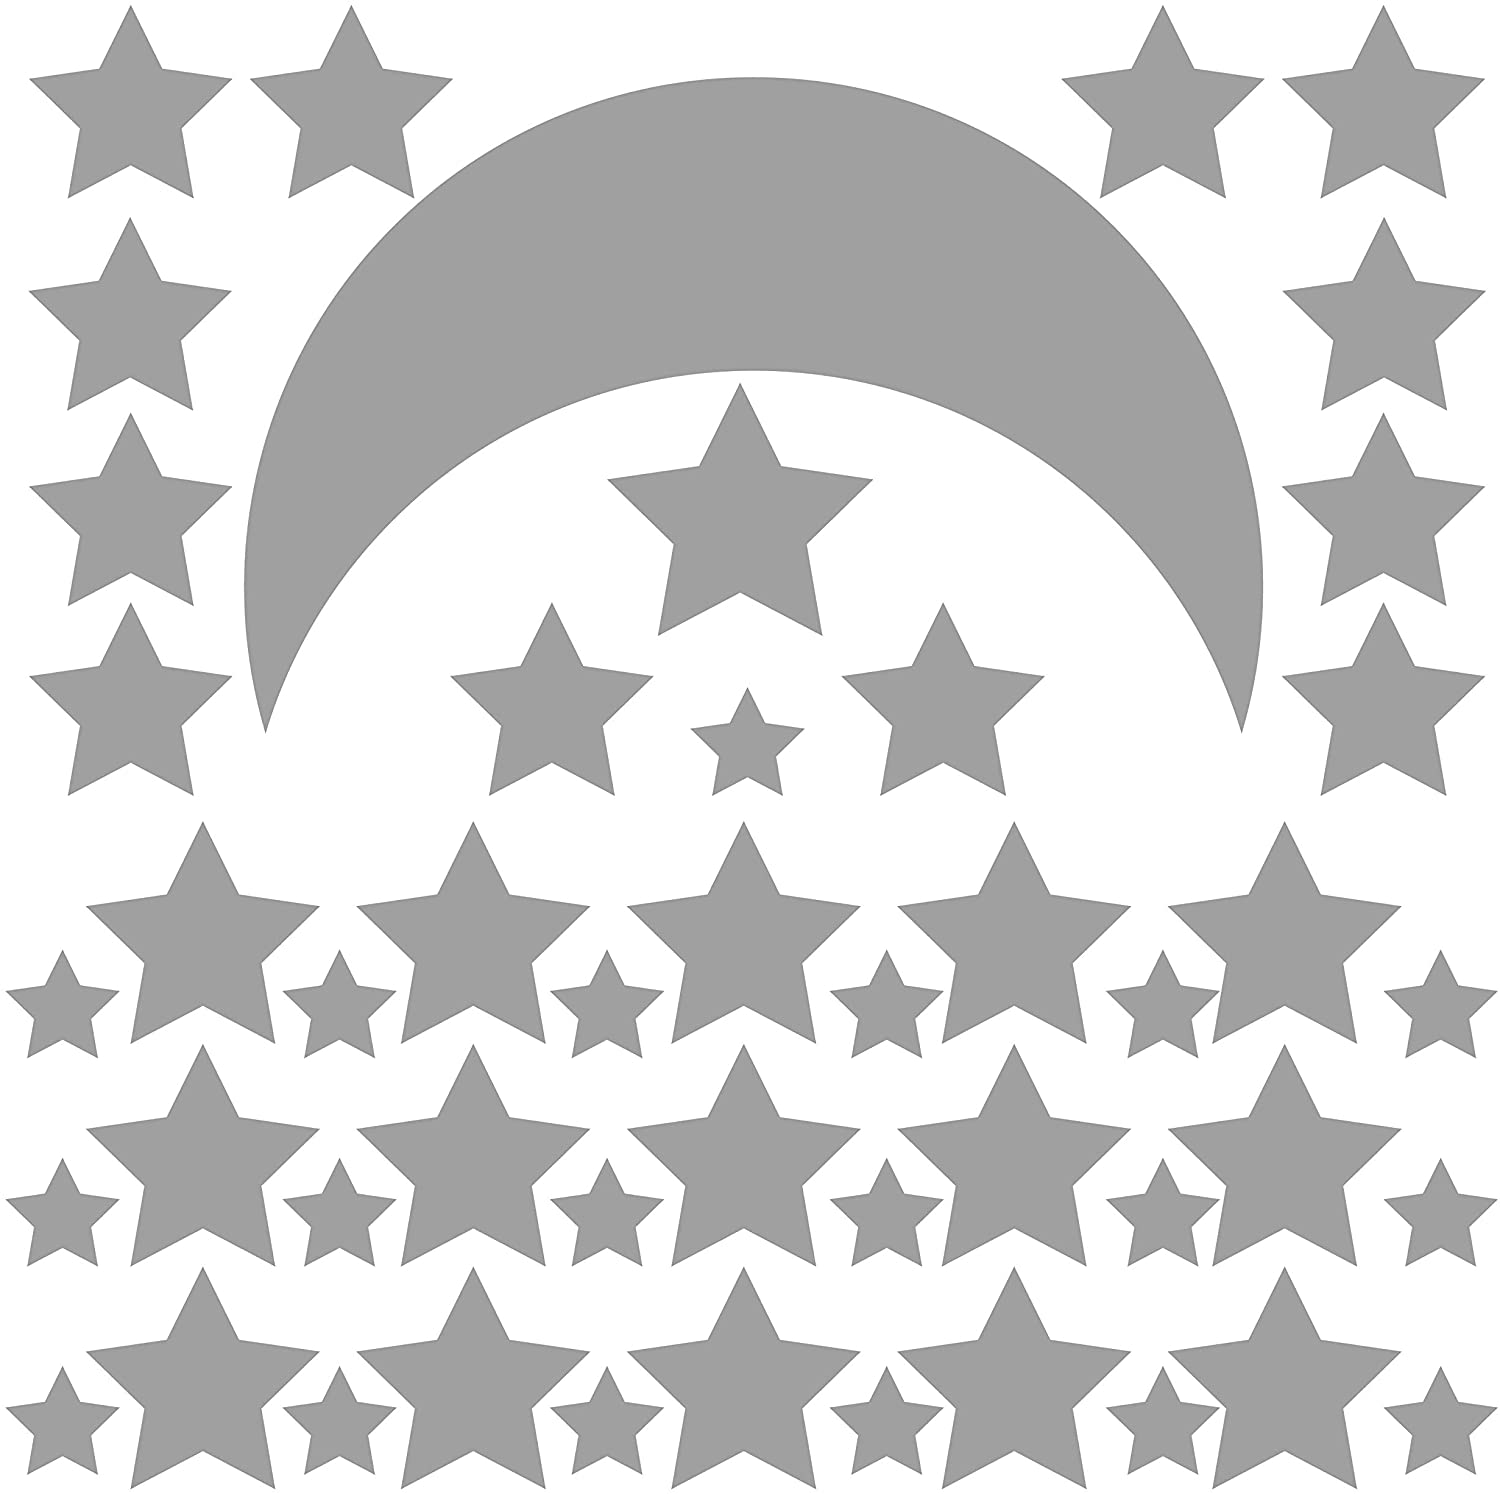 Anumo Star Moon Wall Sticker Paper Children's Bedroom Baby Room Wall Layout Painted Living Room Decoration (Curve, Silver)